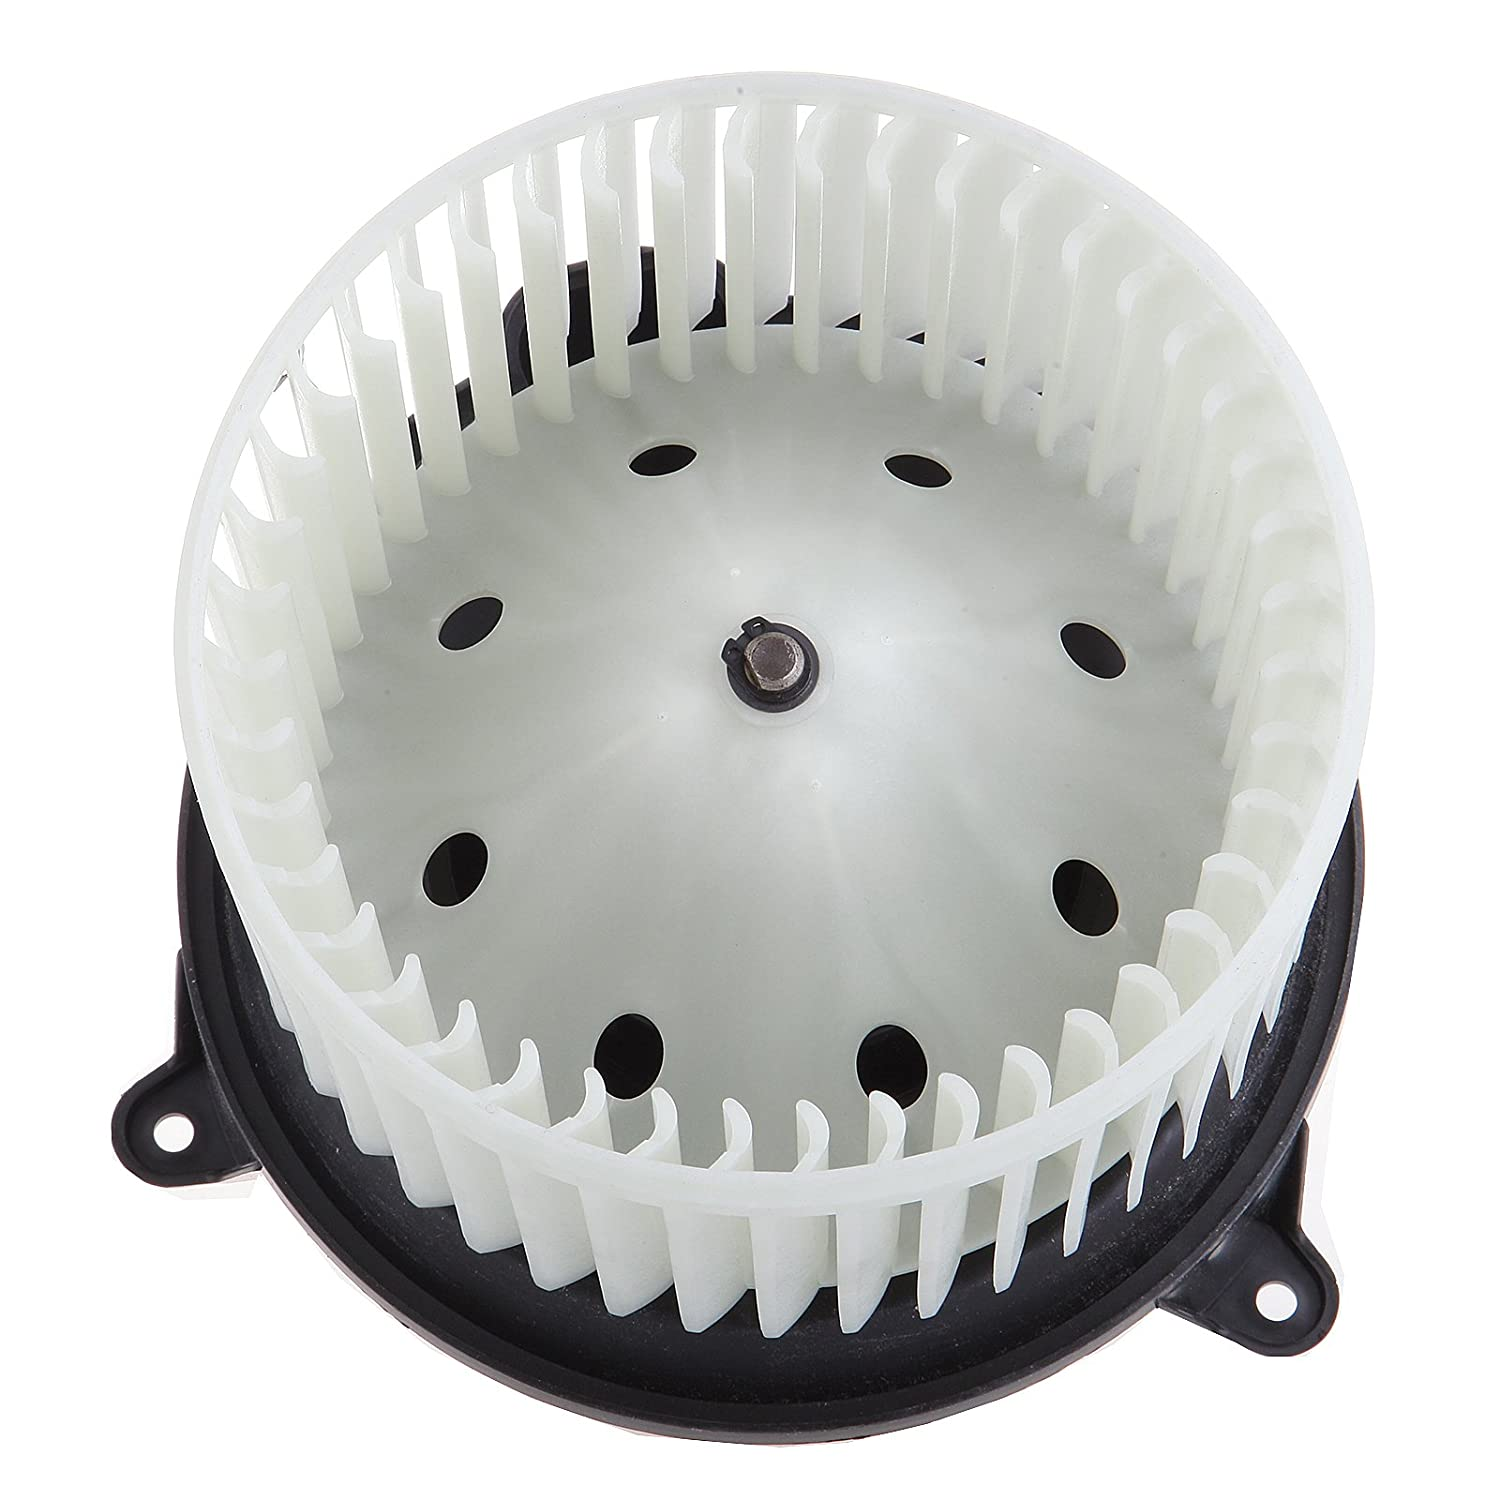 OCPTY A/C Heater Blower Motor ABS w/Fan Cage Air Conditioning HVAC Replacement fit for 2000-2005 Buick Century/2000-2004 Buick Regal/2000-2004 Chevrolet Corvette/2001-2003 Chevrolet Impala 058391-5209-1345594481